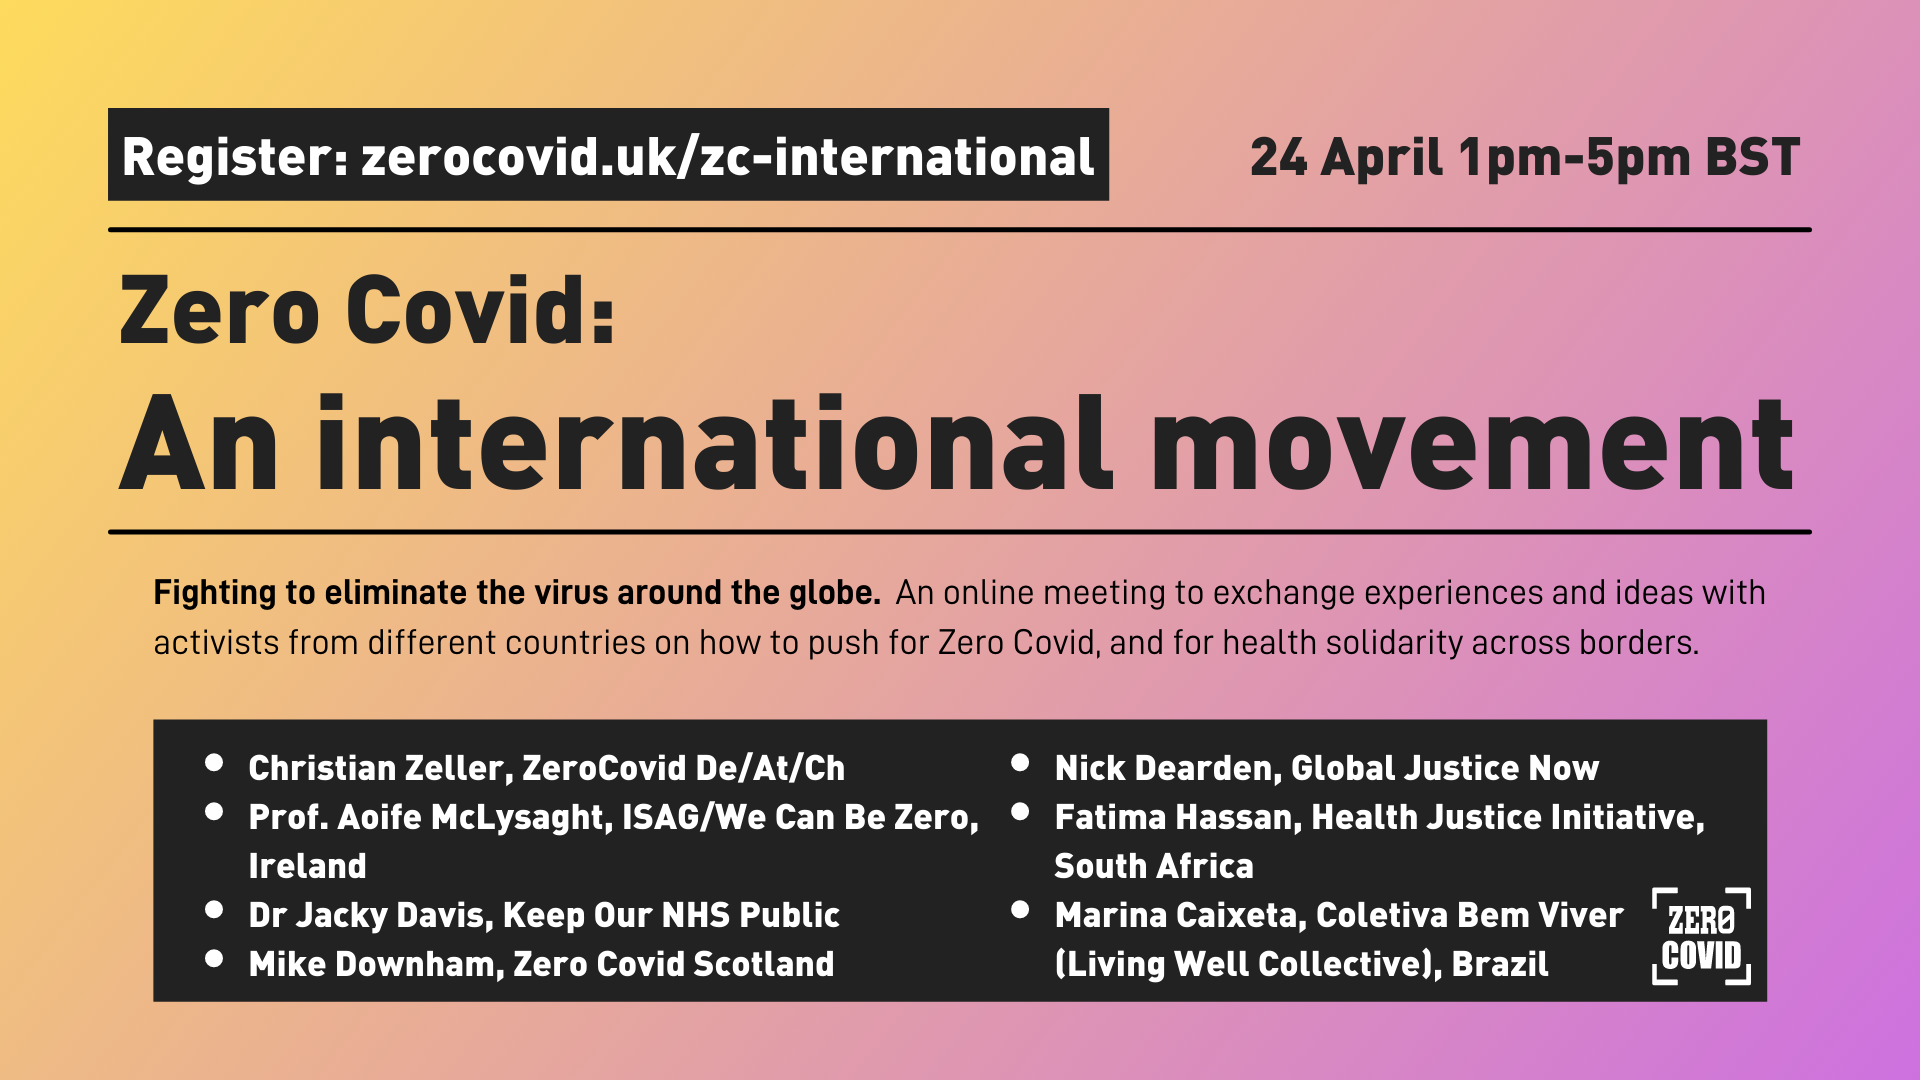 """A image publicising an event """"Zero Covid: an international movement"""" on Saturday April 24 2021"""